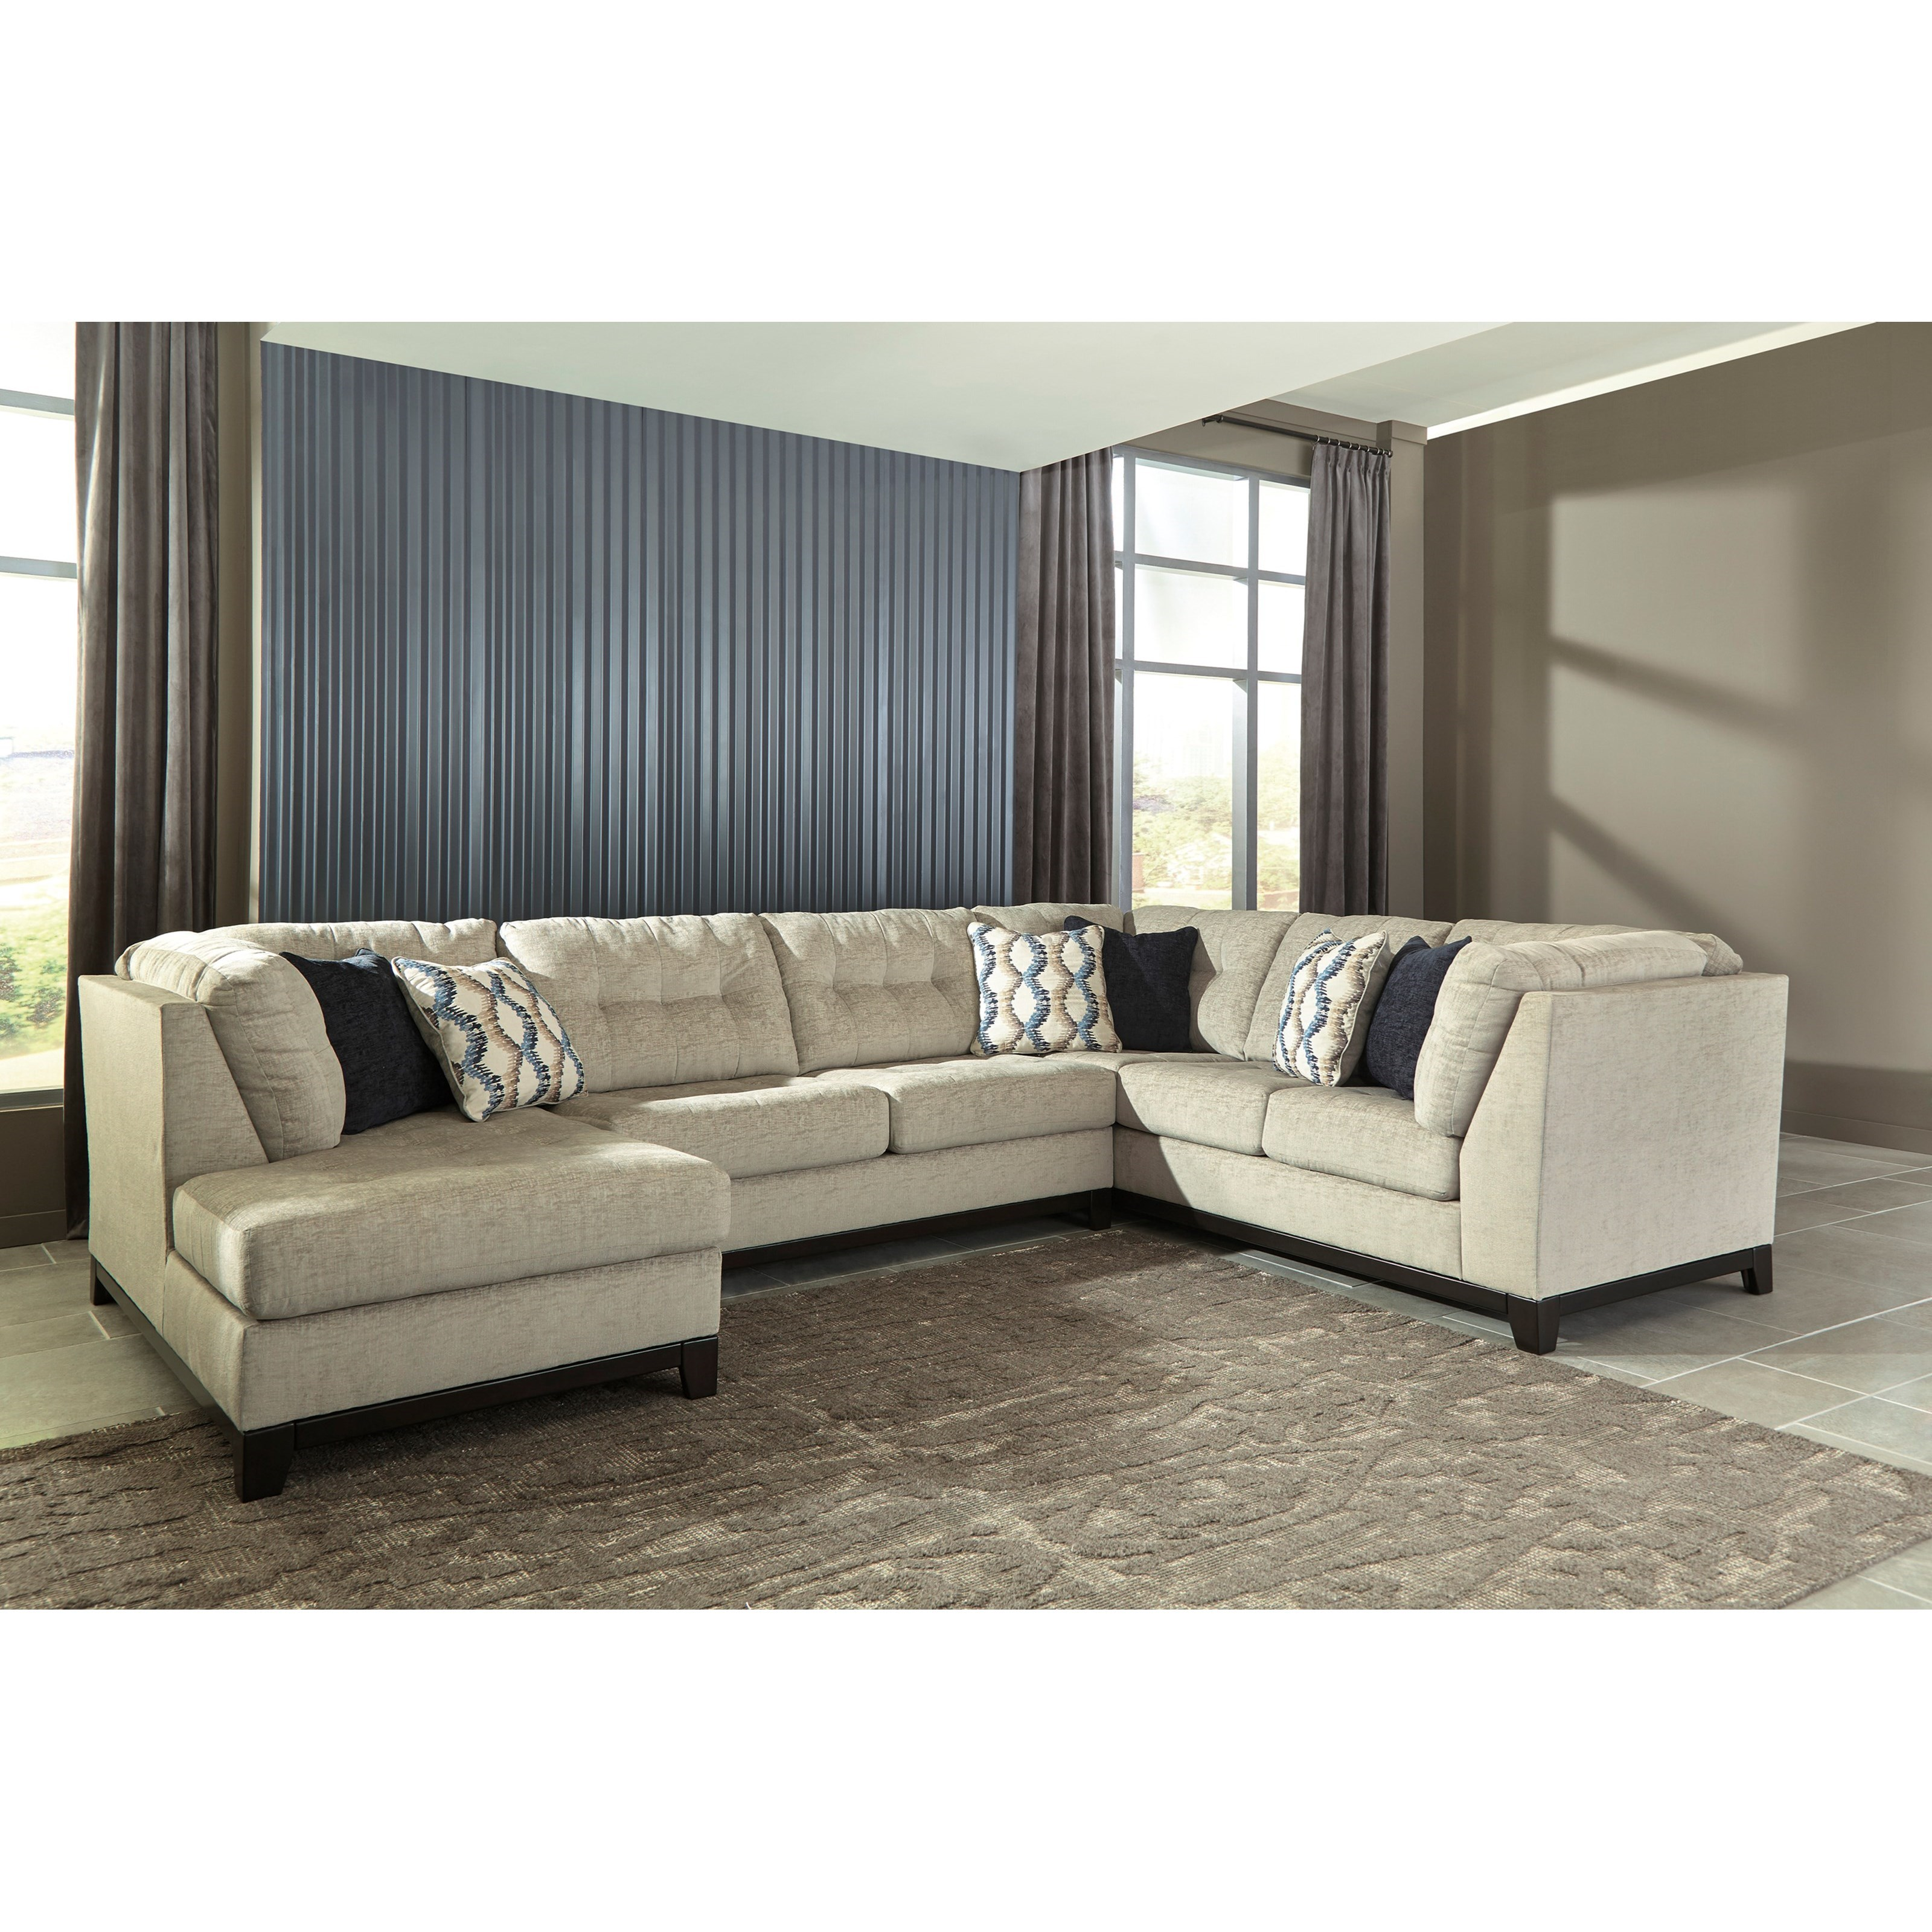 Benchcraft beckendorf 3 piece sectional with left chaise for 3 piece sectional sofa with chaise